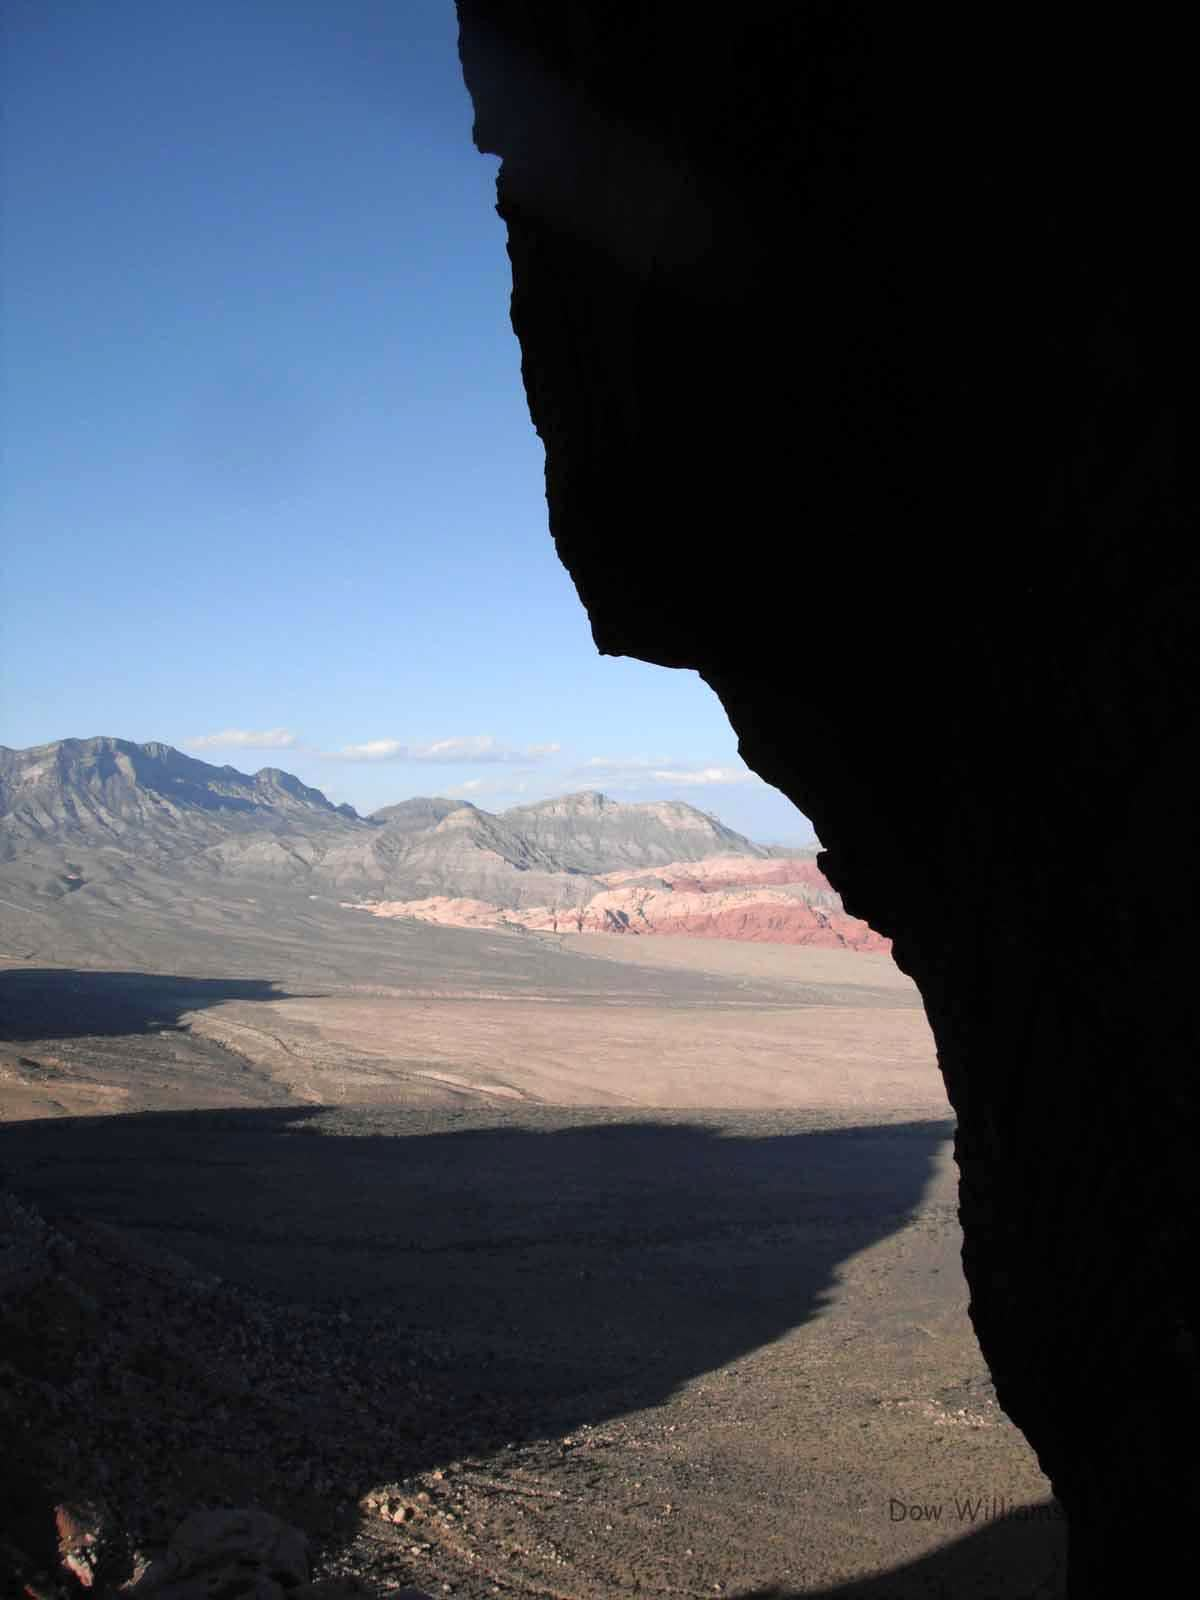 The Warrior, 5.11a, 7 Pitches